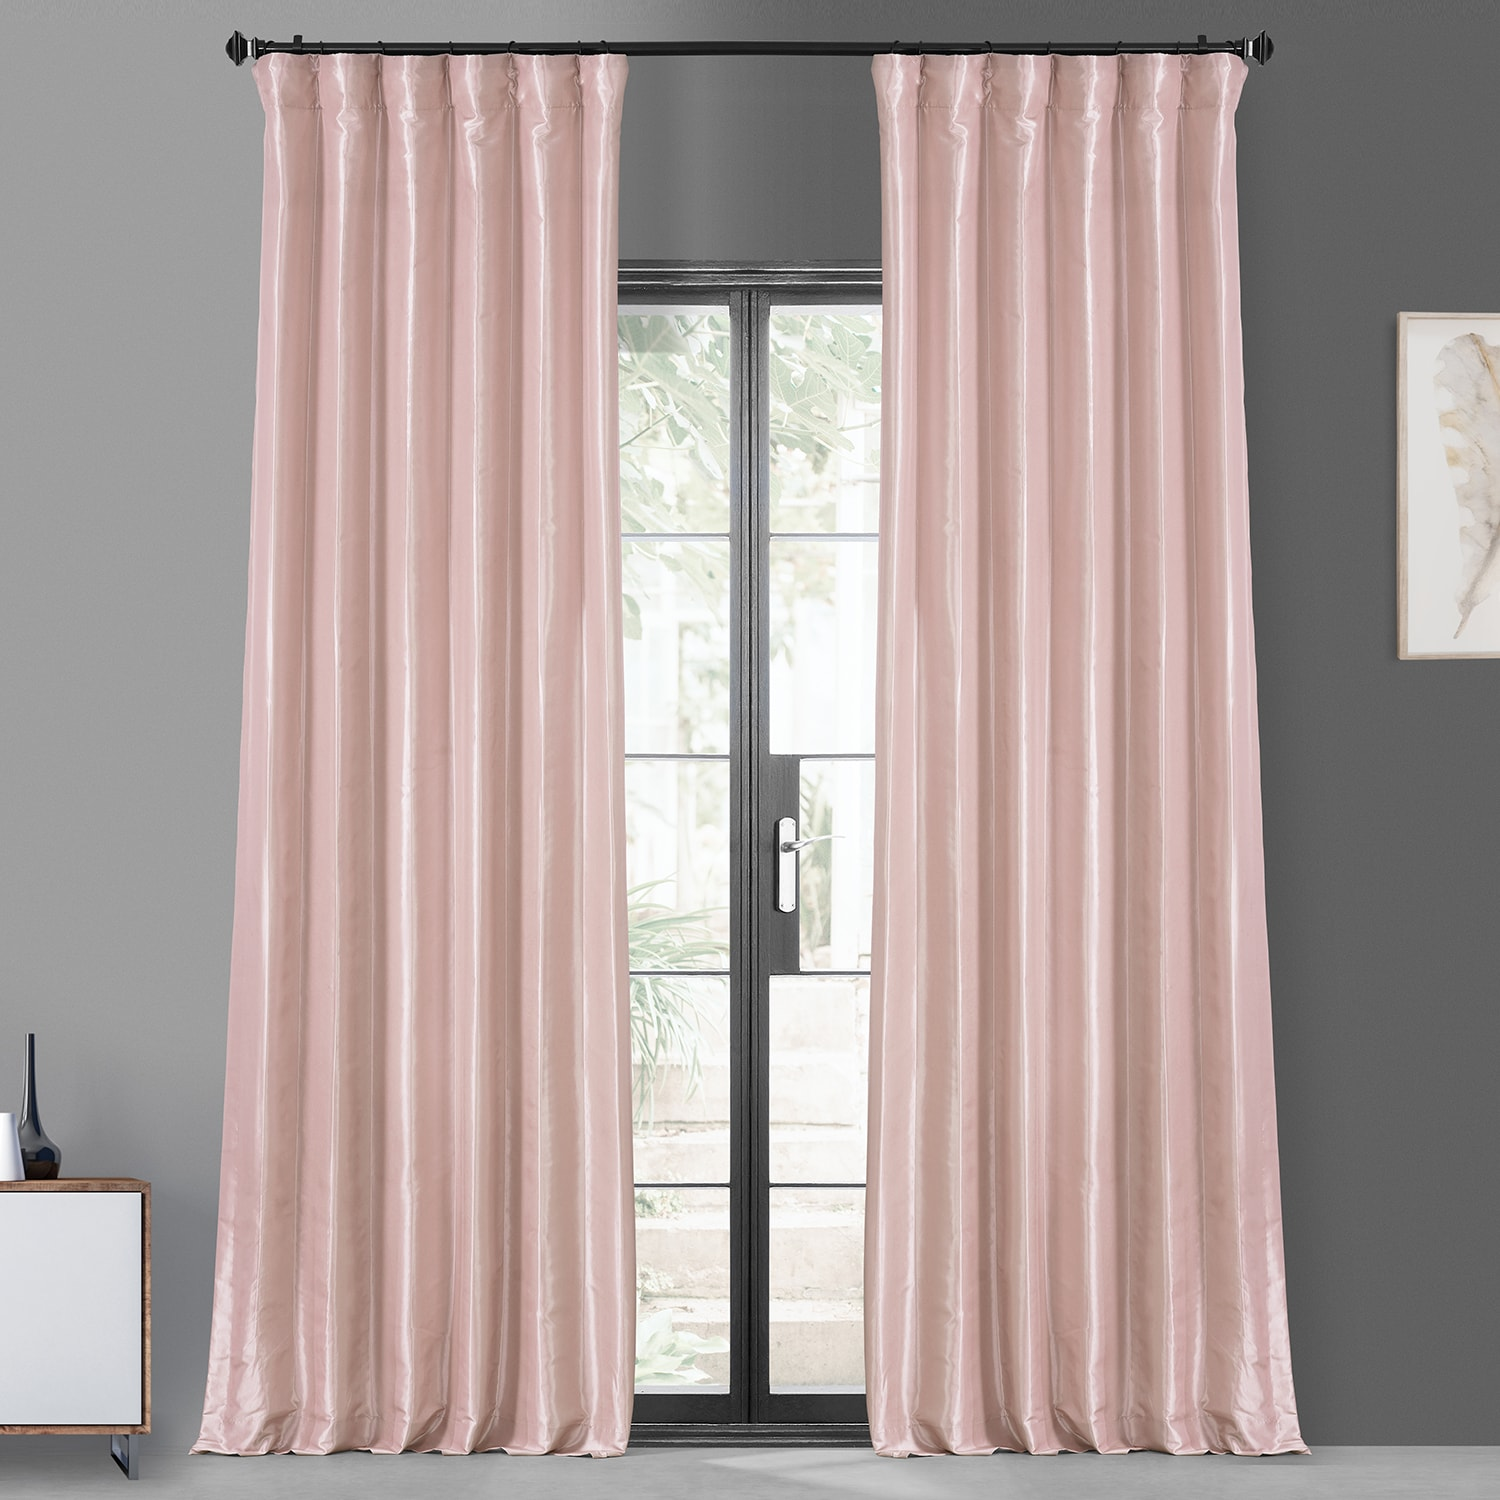 Salmon Rose Blackout Faux Silk Taffeta Curtain